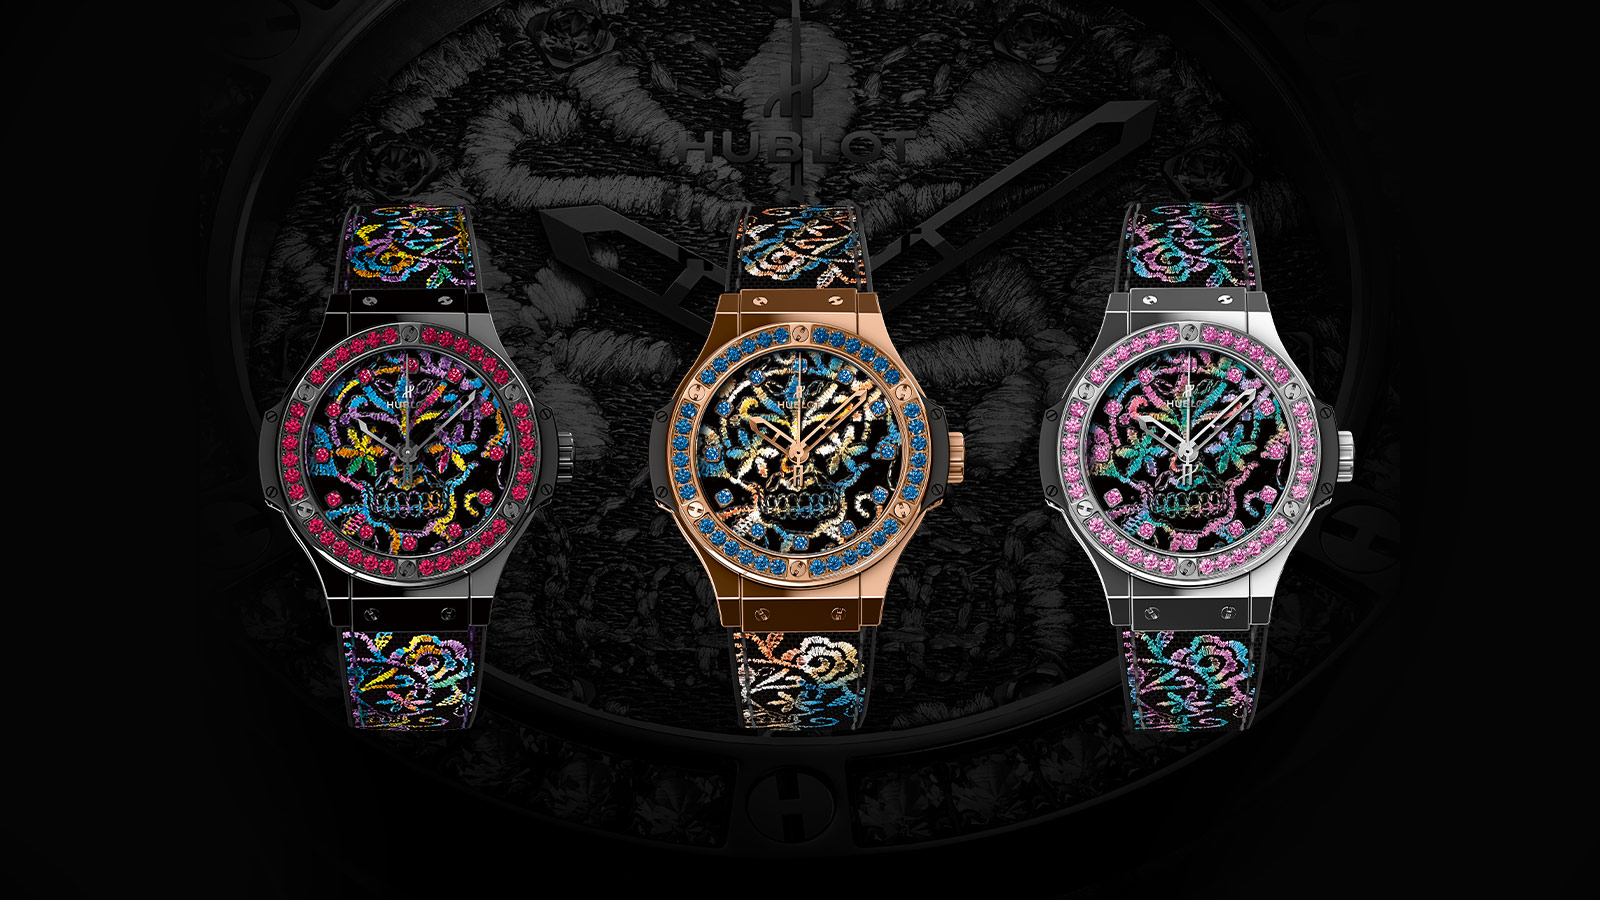 Purple And Black Wallpaper Designs Five New Hublot Watches To Check Out In 2017